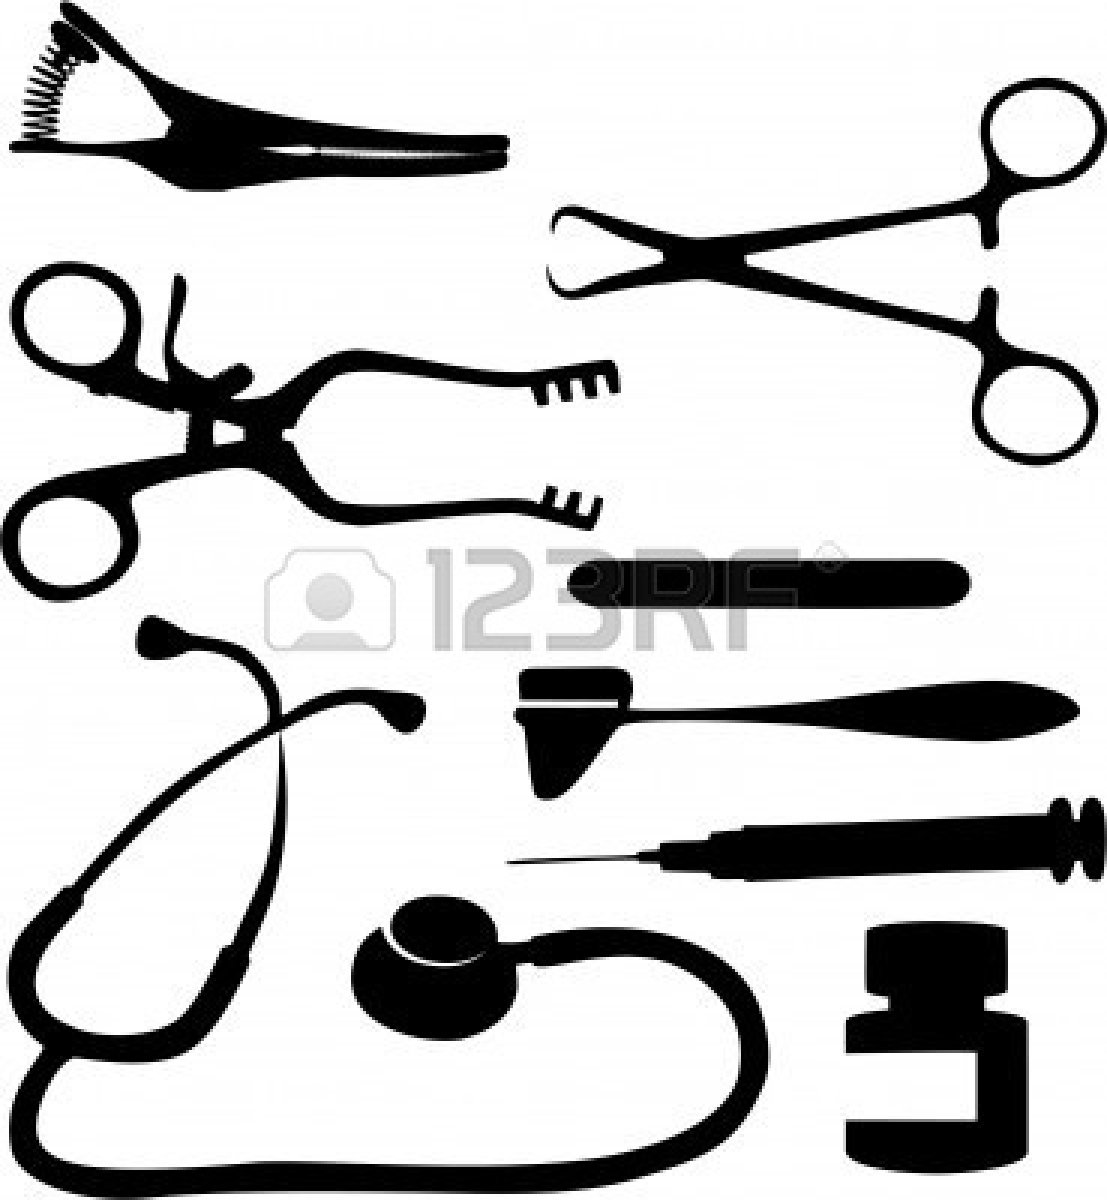 Medical Doctor Logo Clipart